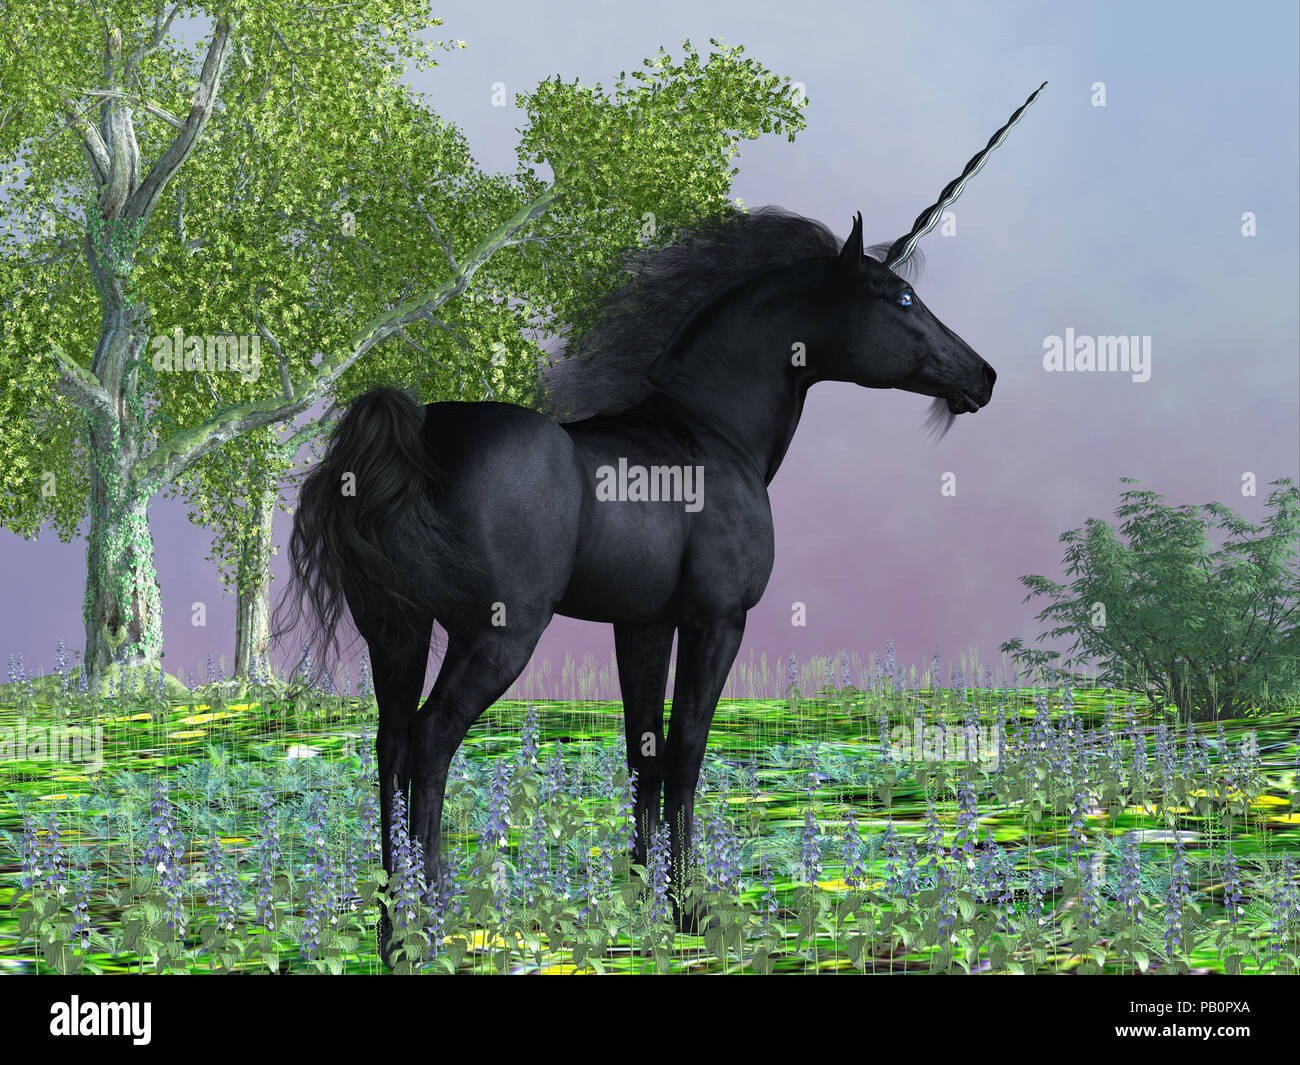 Black Beauty Unicorn - Purple flowers surround a beautiful black satin unicorn with a forehead horn and cloven hooves. - Stock Image